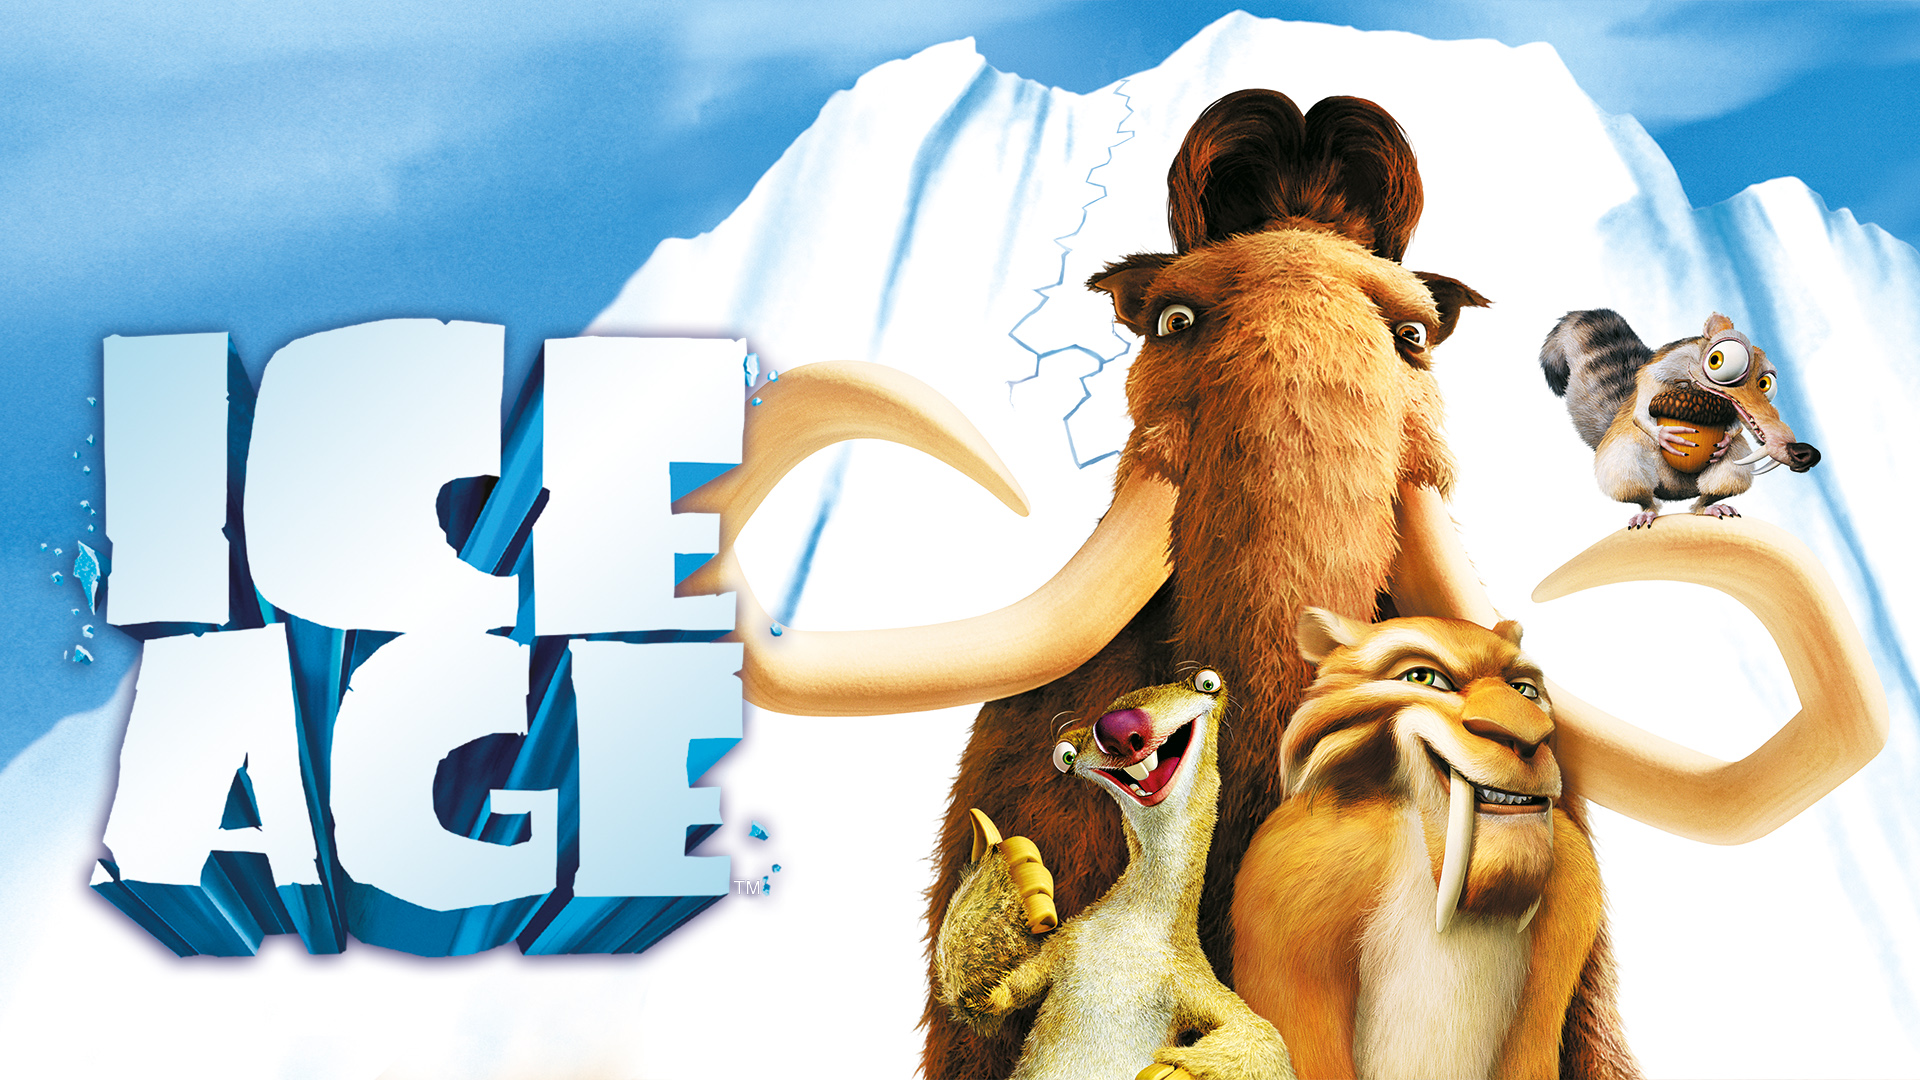 Ice Age movie review